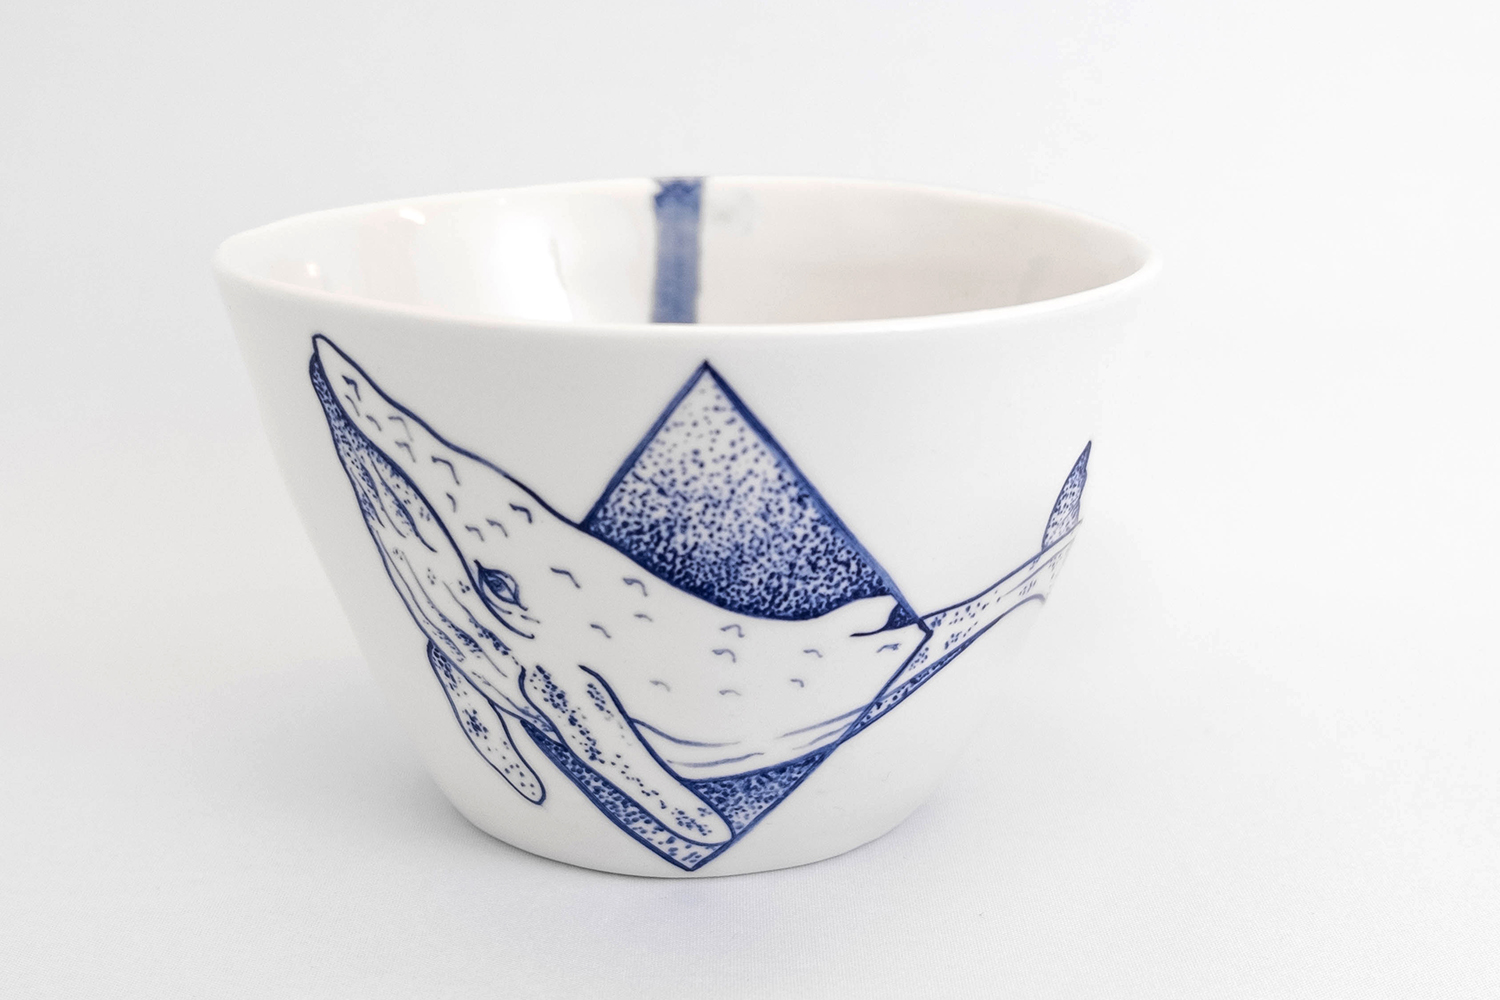 large bowl porcelain handmade blue white whale tattoo modern minimal geometric berlin style tattoo dinnerware antikapratika.jpg